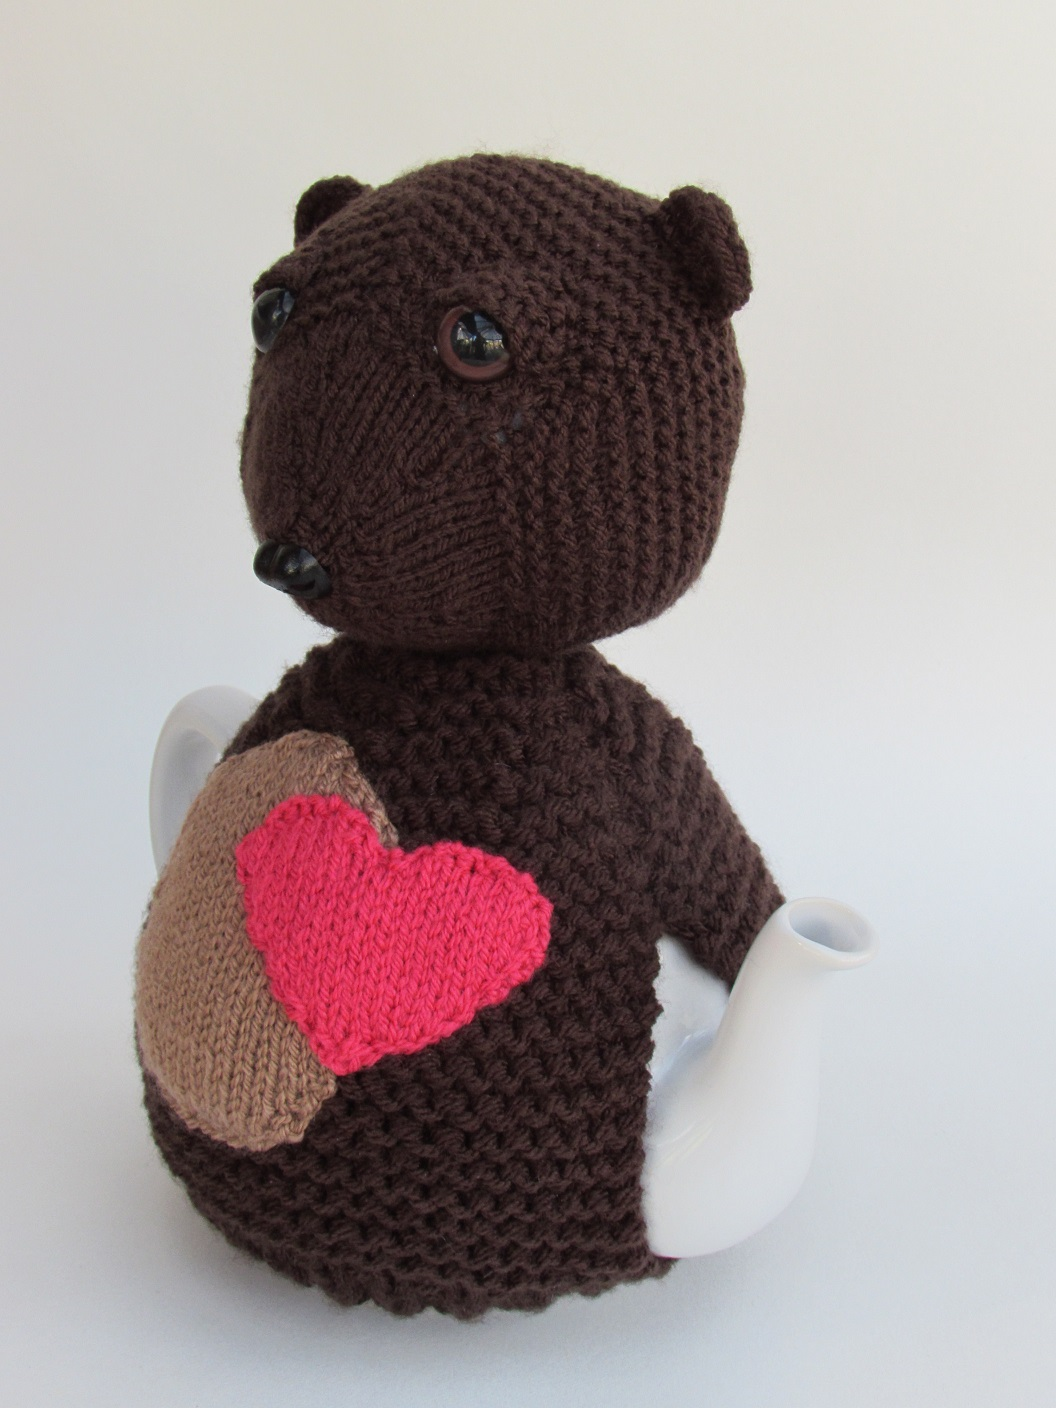 Bear Heart knitting pattern